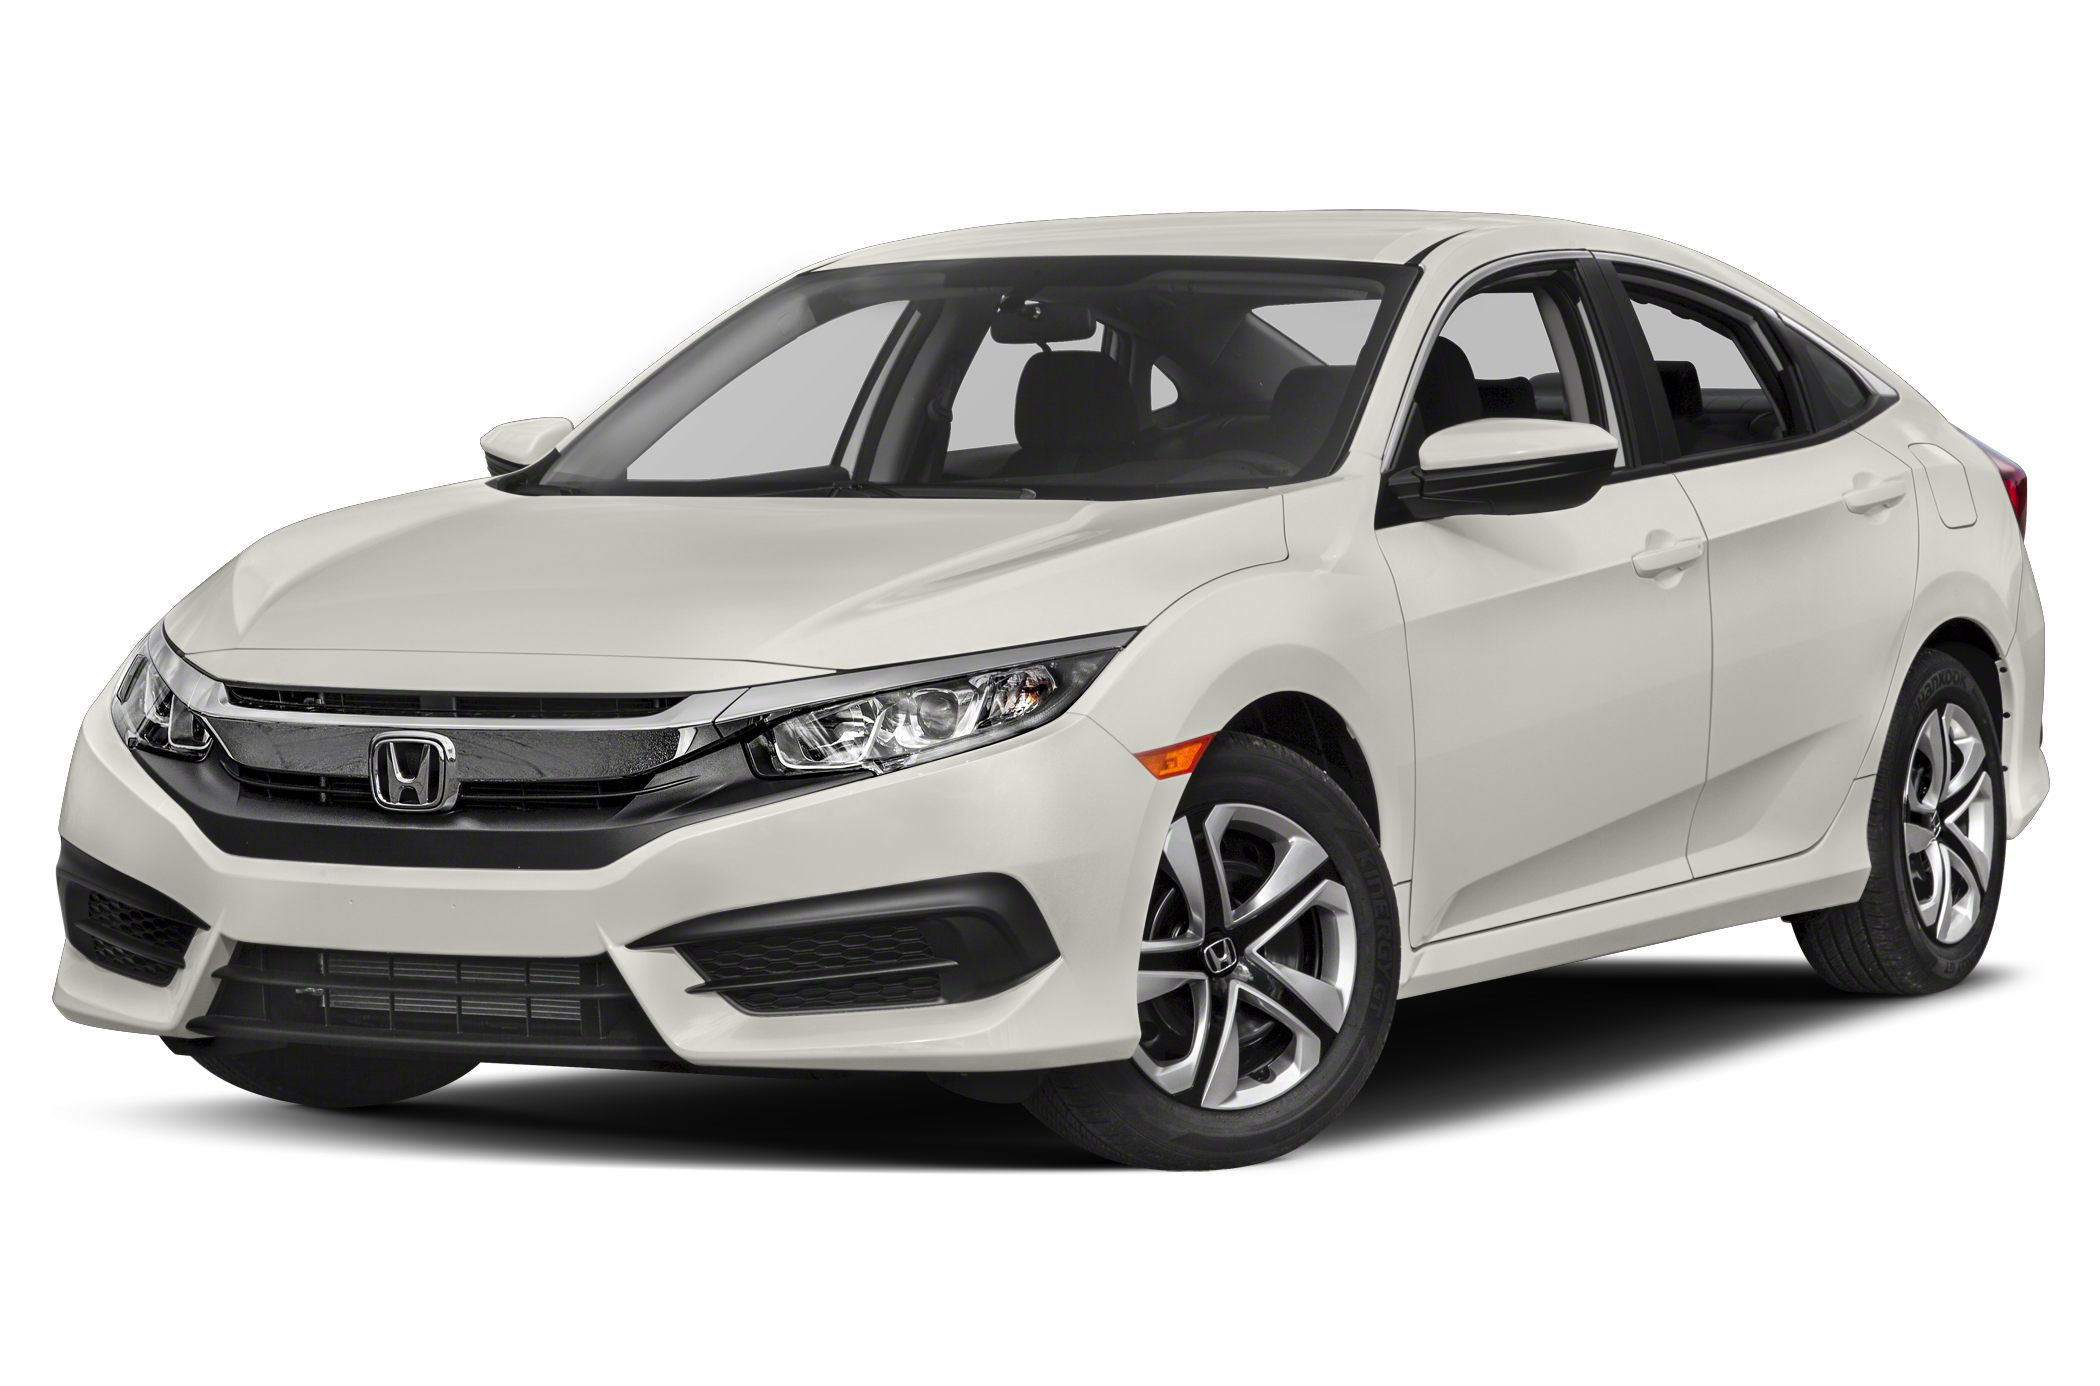 2016 honda civic coupe first drive autoblog. Black Bedroom Furniture Sets. Home Design Ideas